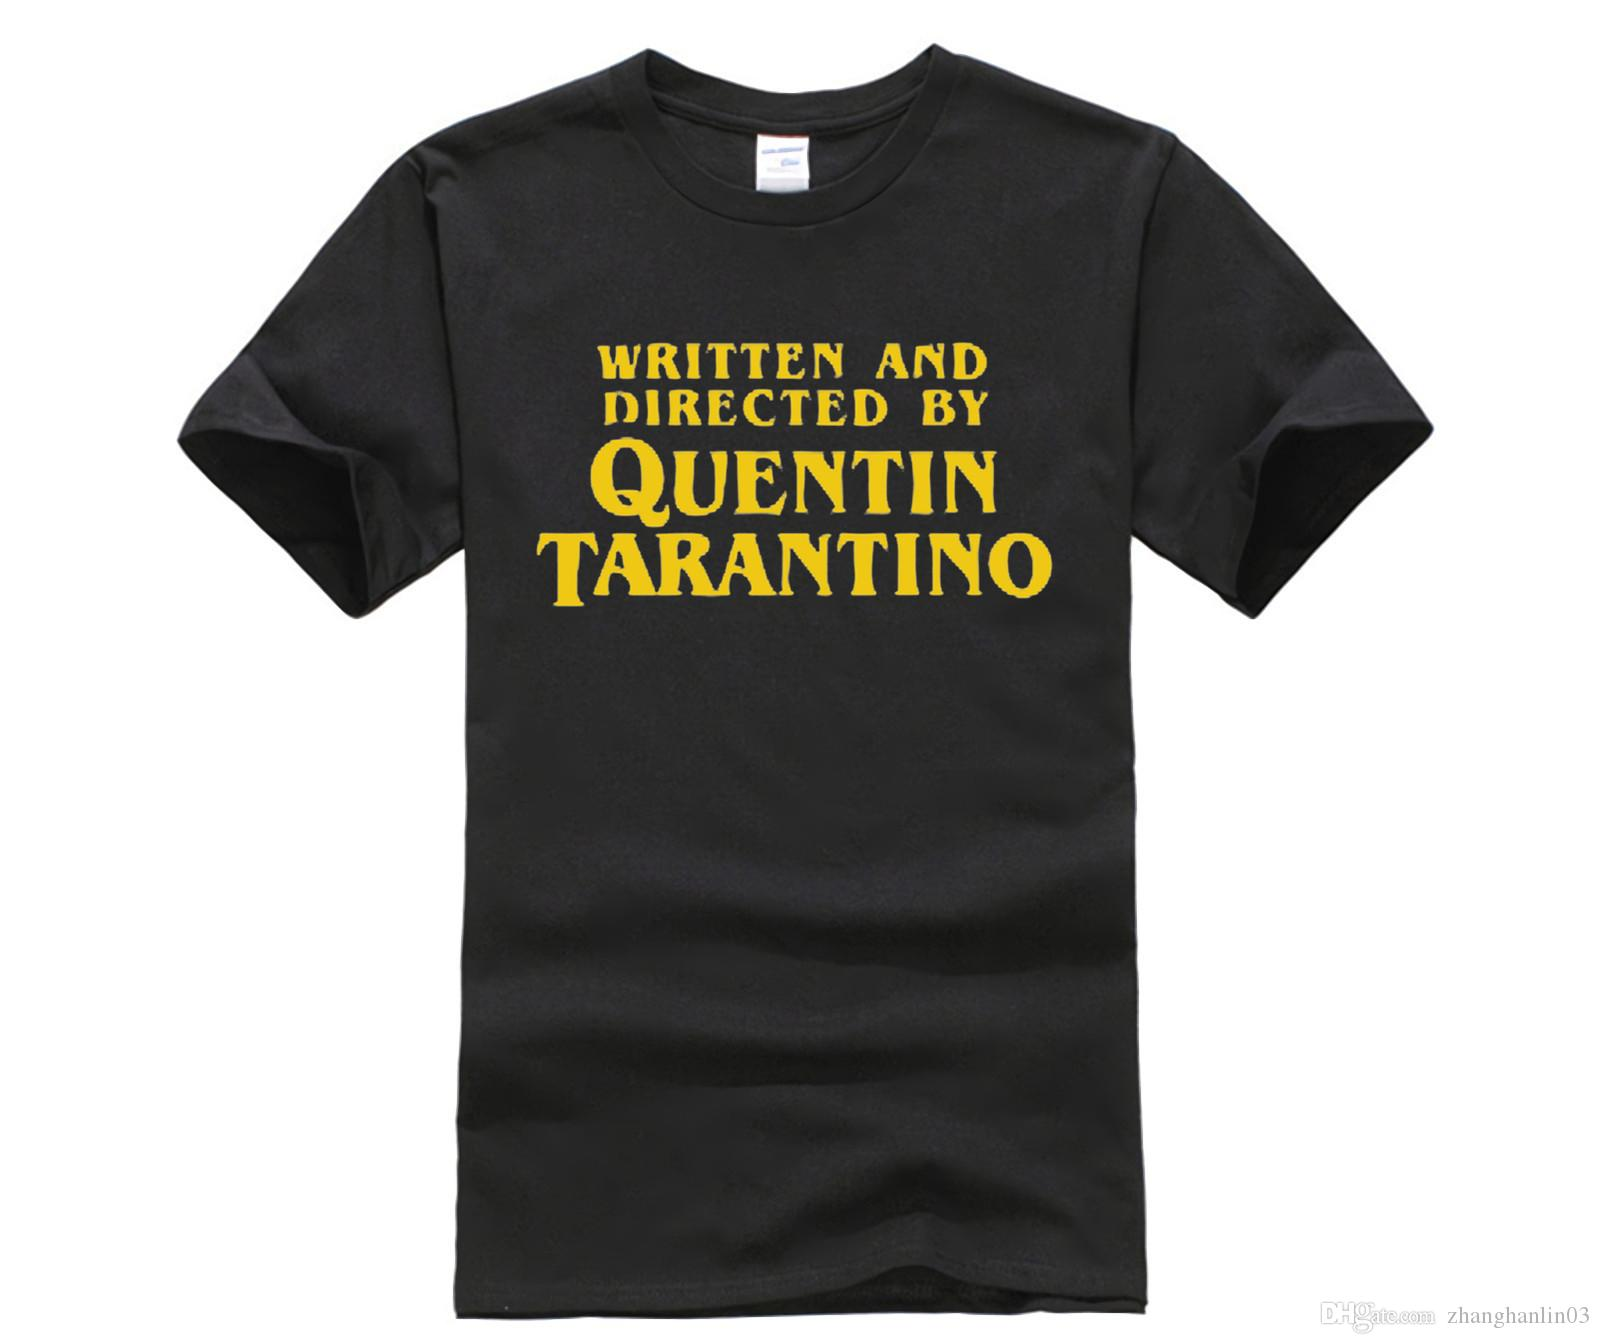 dacacfb3b Designer T Shirt Written And Directed By Quentin Tarantino T Shirt Man  Print Short Sleeve Male Tops Crew Neck Tee Shirt Awesome T Shirts For Sale  White T ...